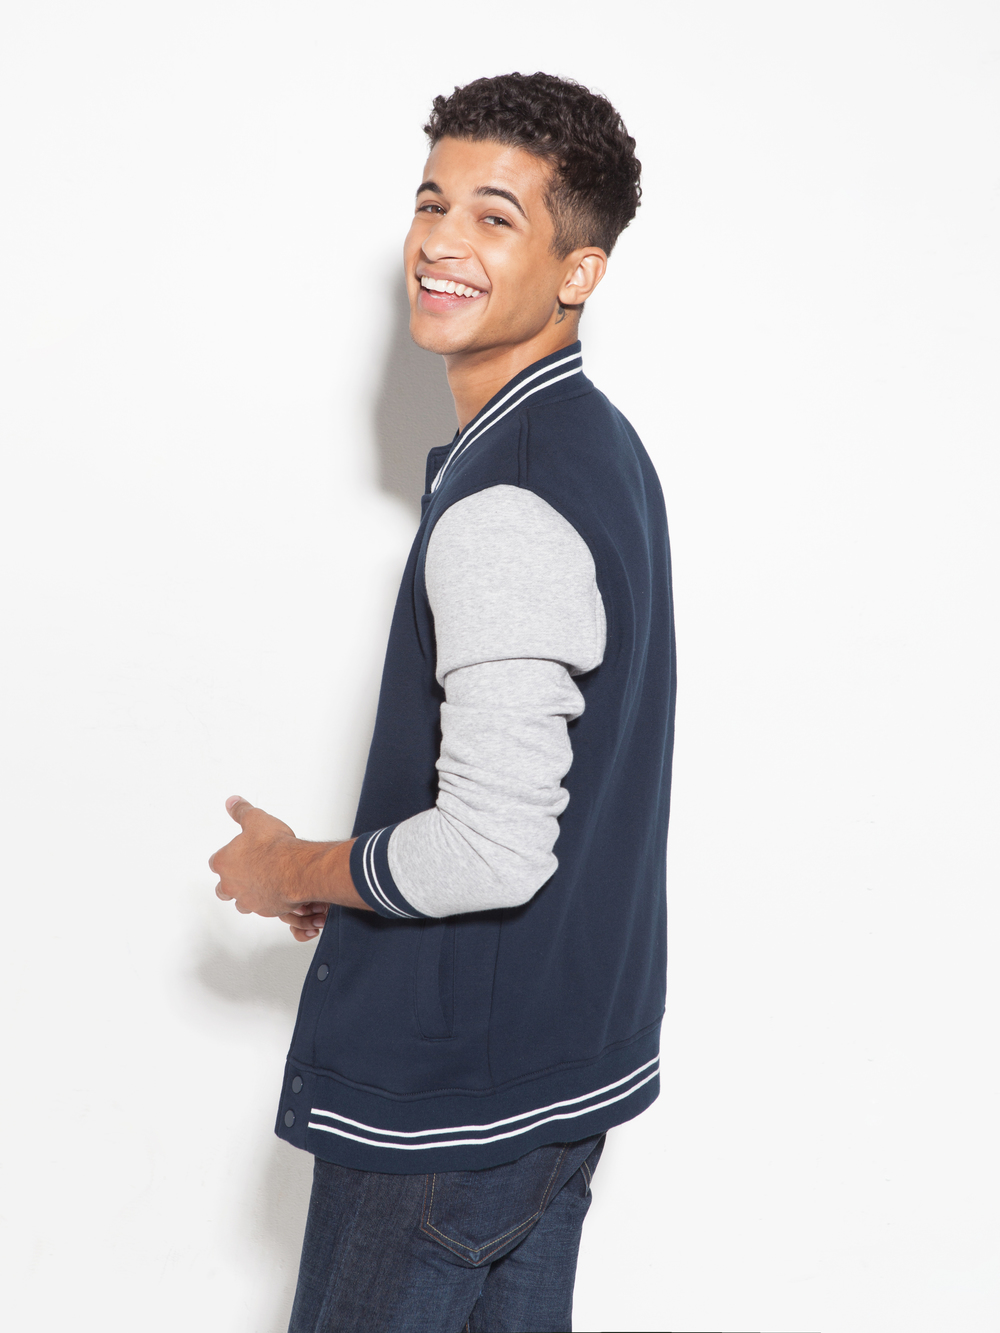 Jordan Fisher - Singer